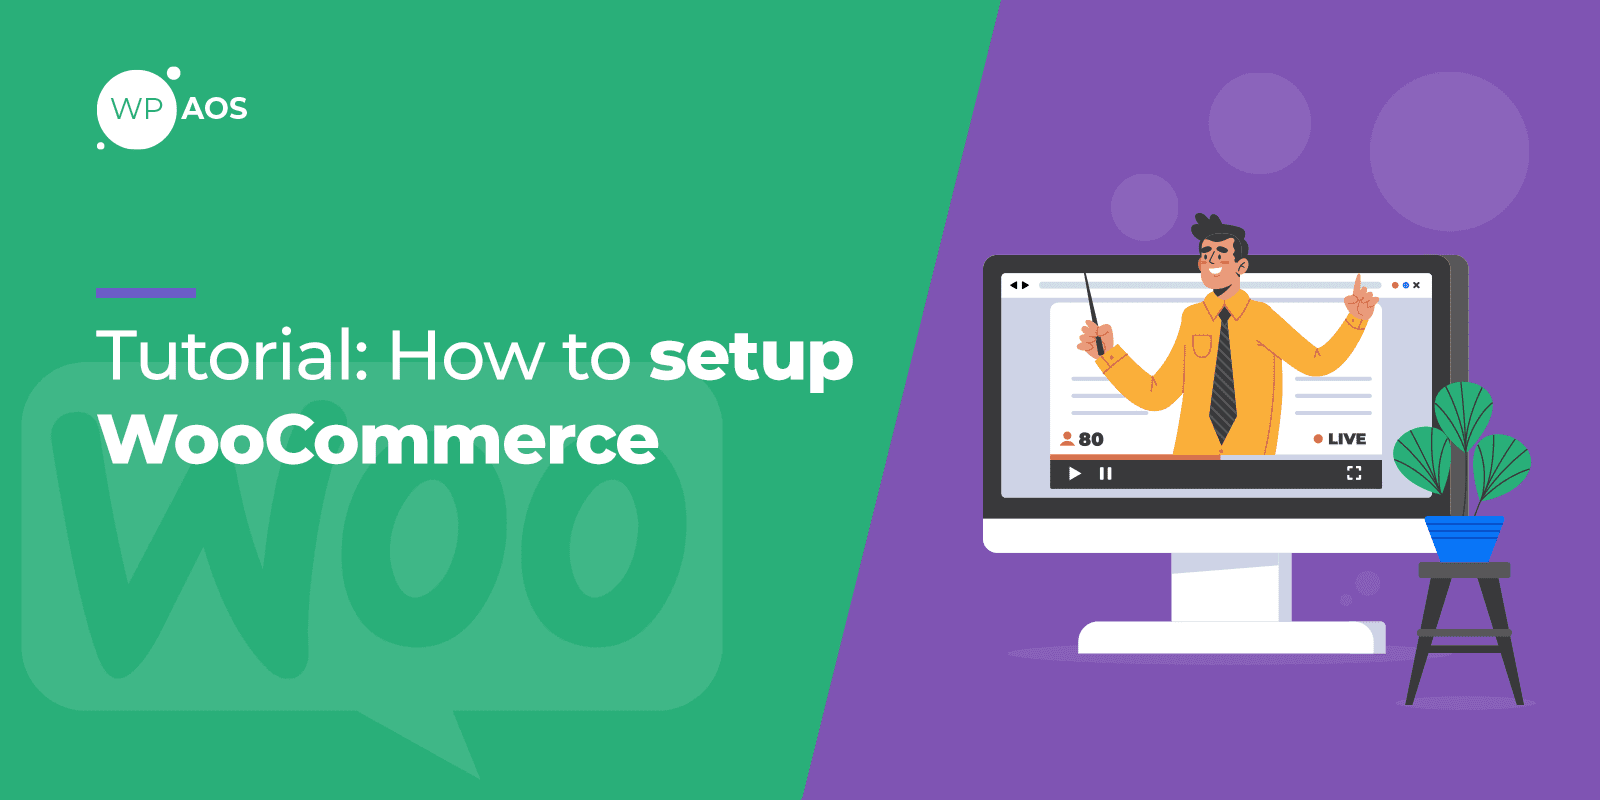 WooCommerce Setup Tutorial, WordPress Maintenance, wpaos